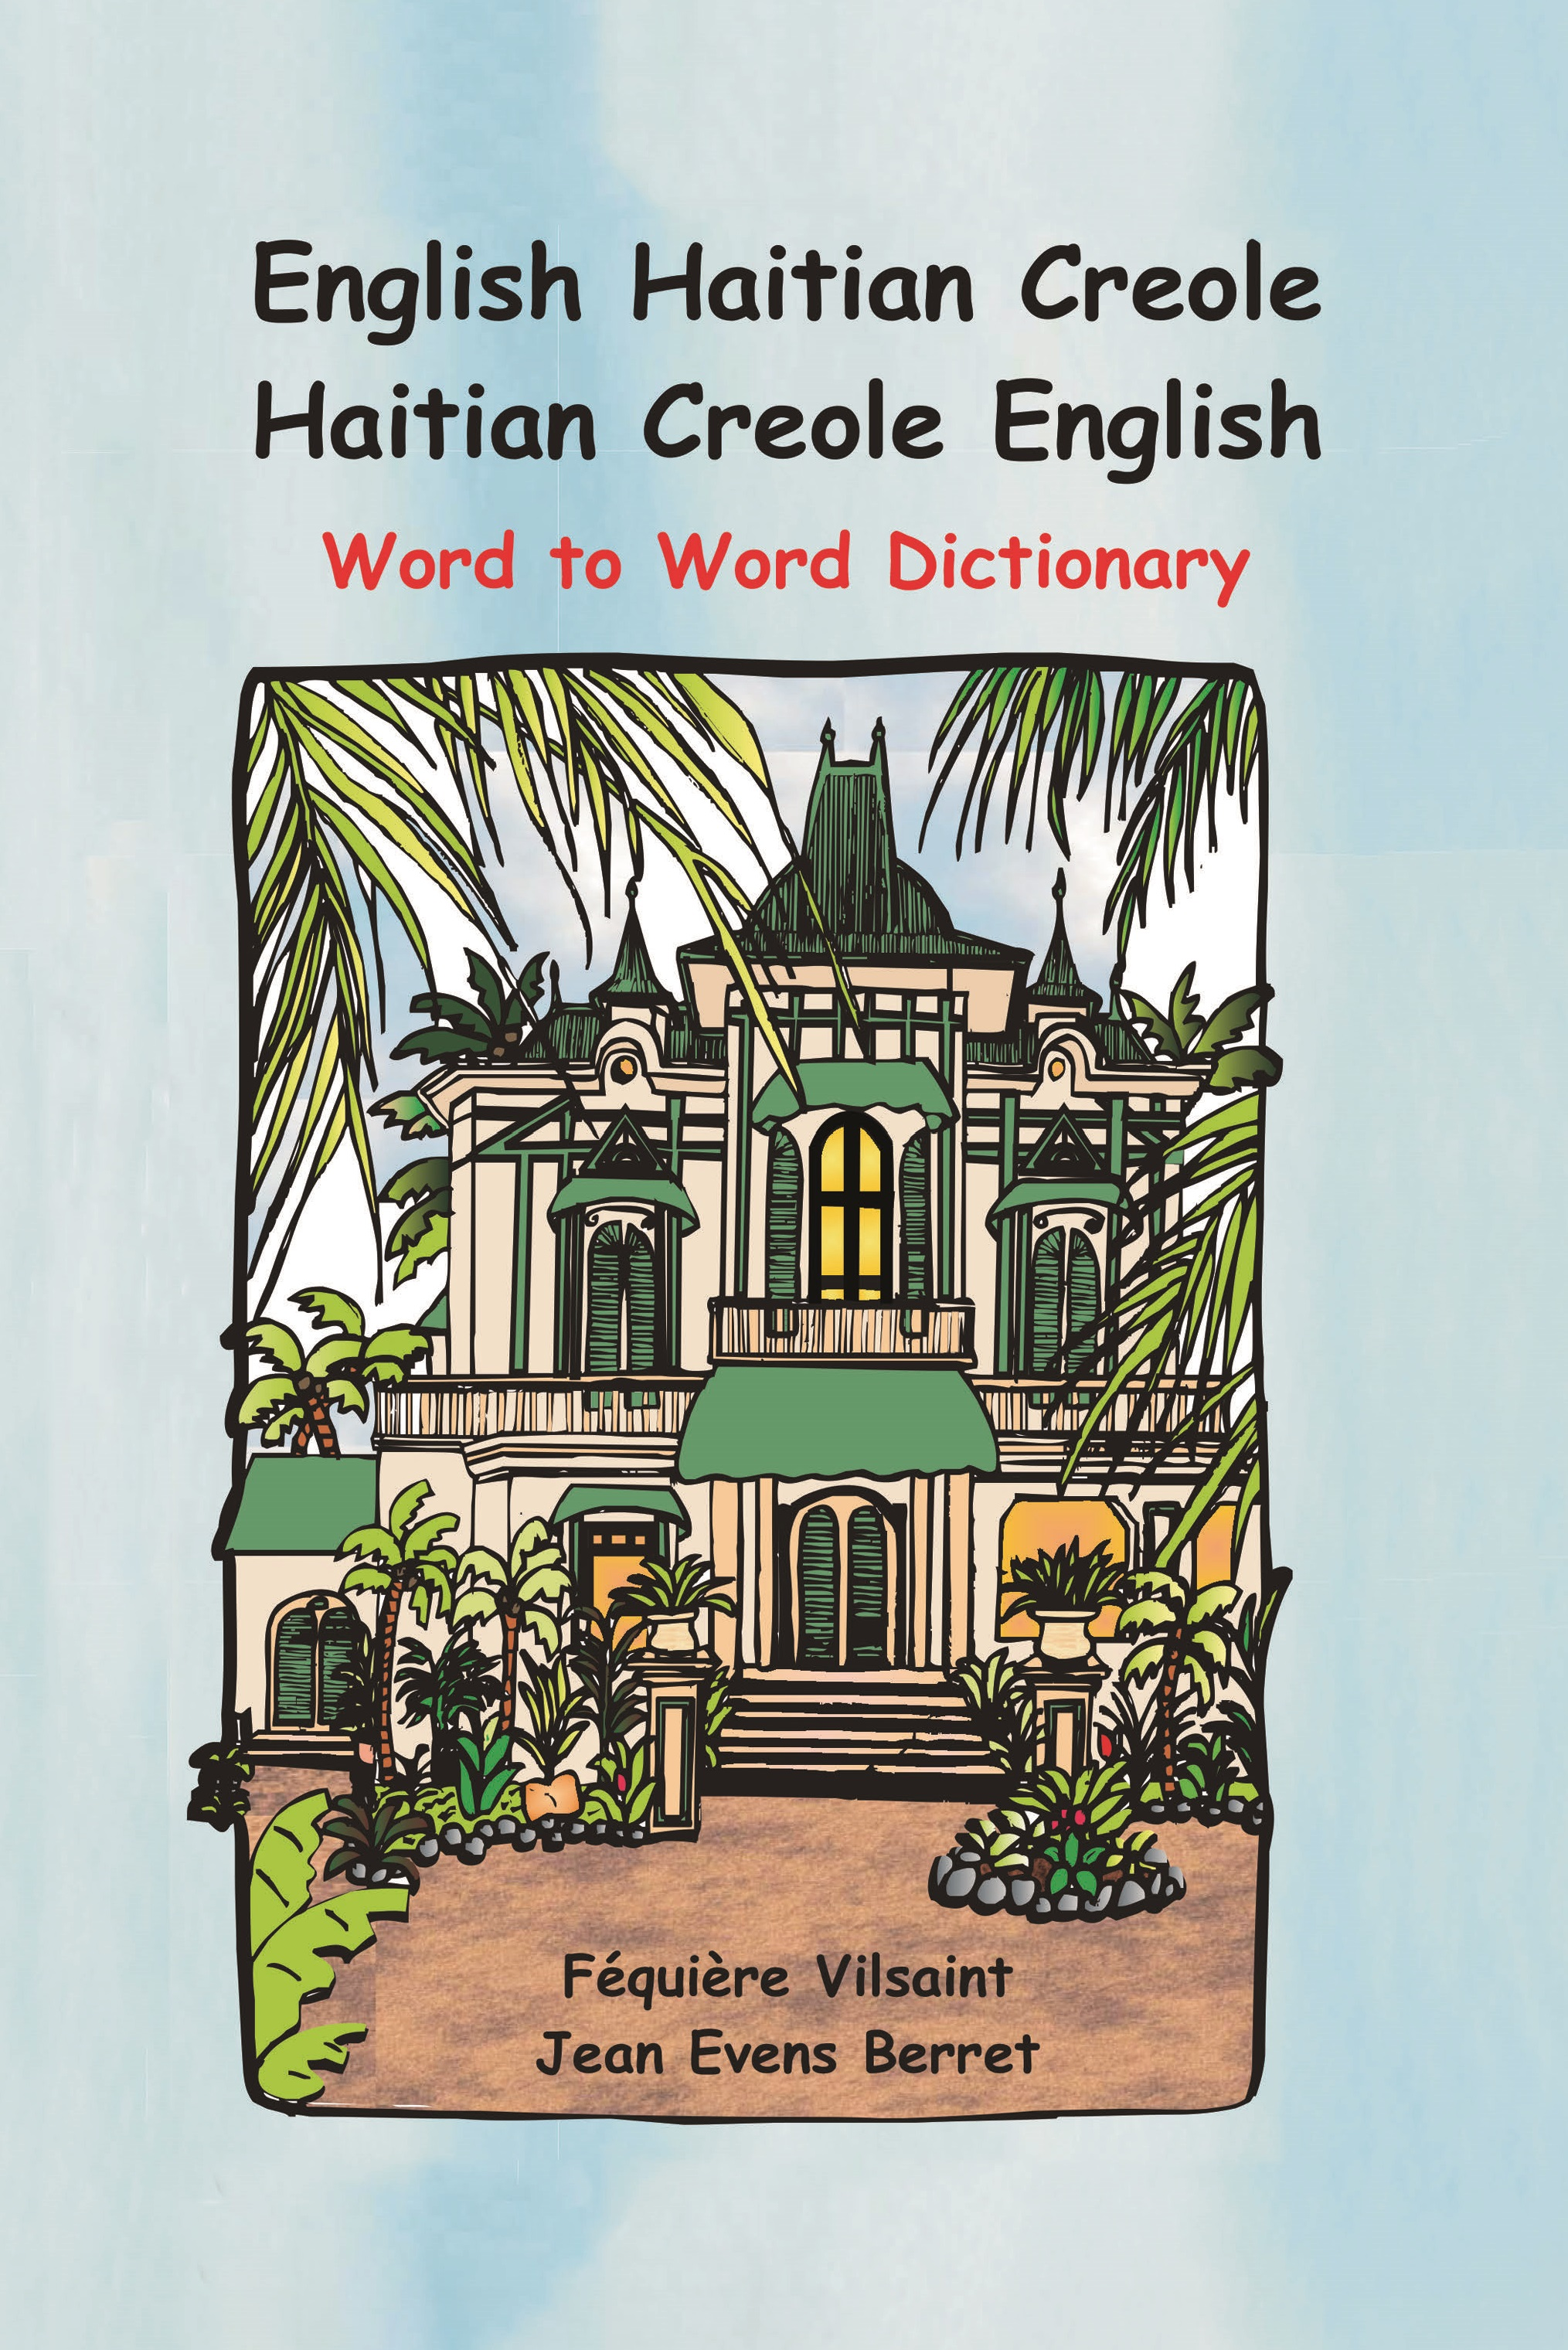 English Haitian Creole Word to Word Dictionnary